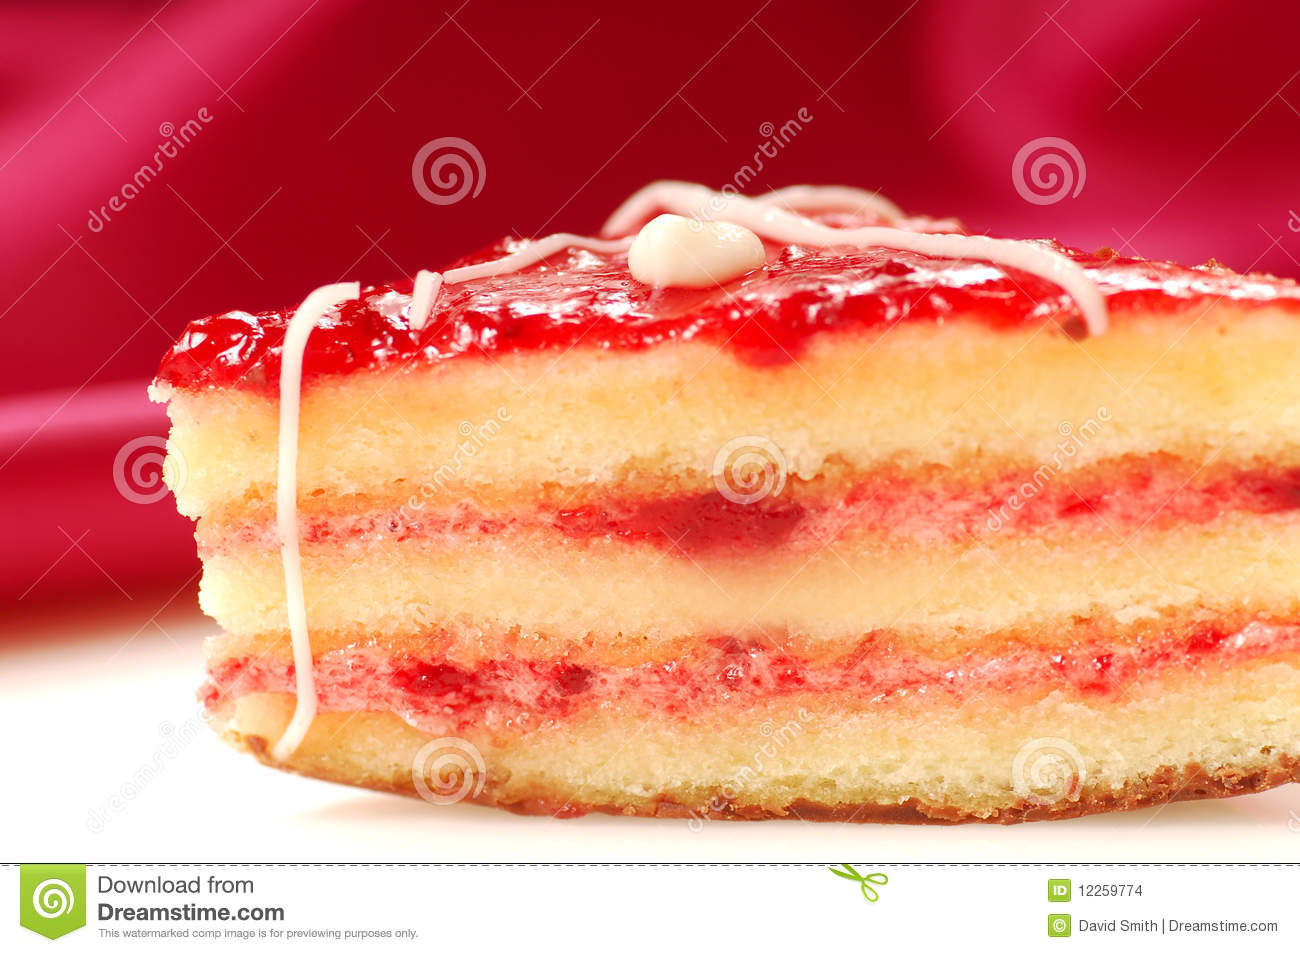 strawberry glaze for cake yellow cake with strawberry glaze petifore stock photo 7752